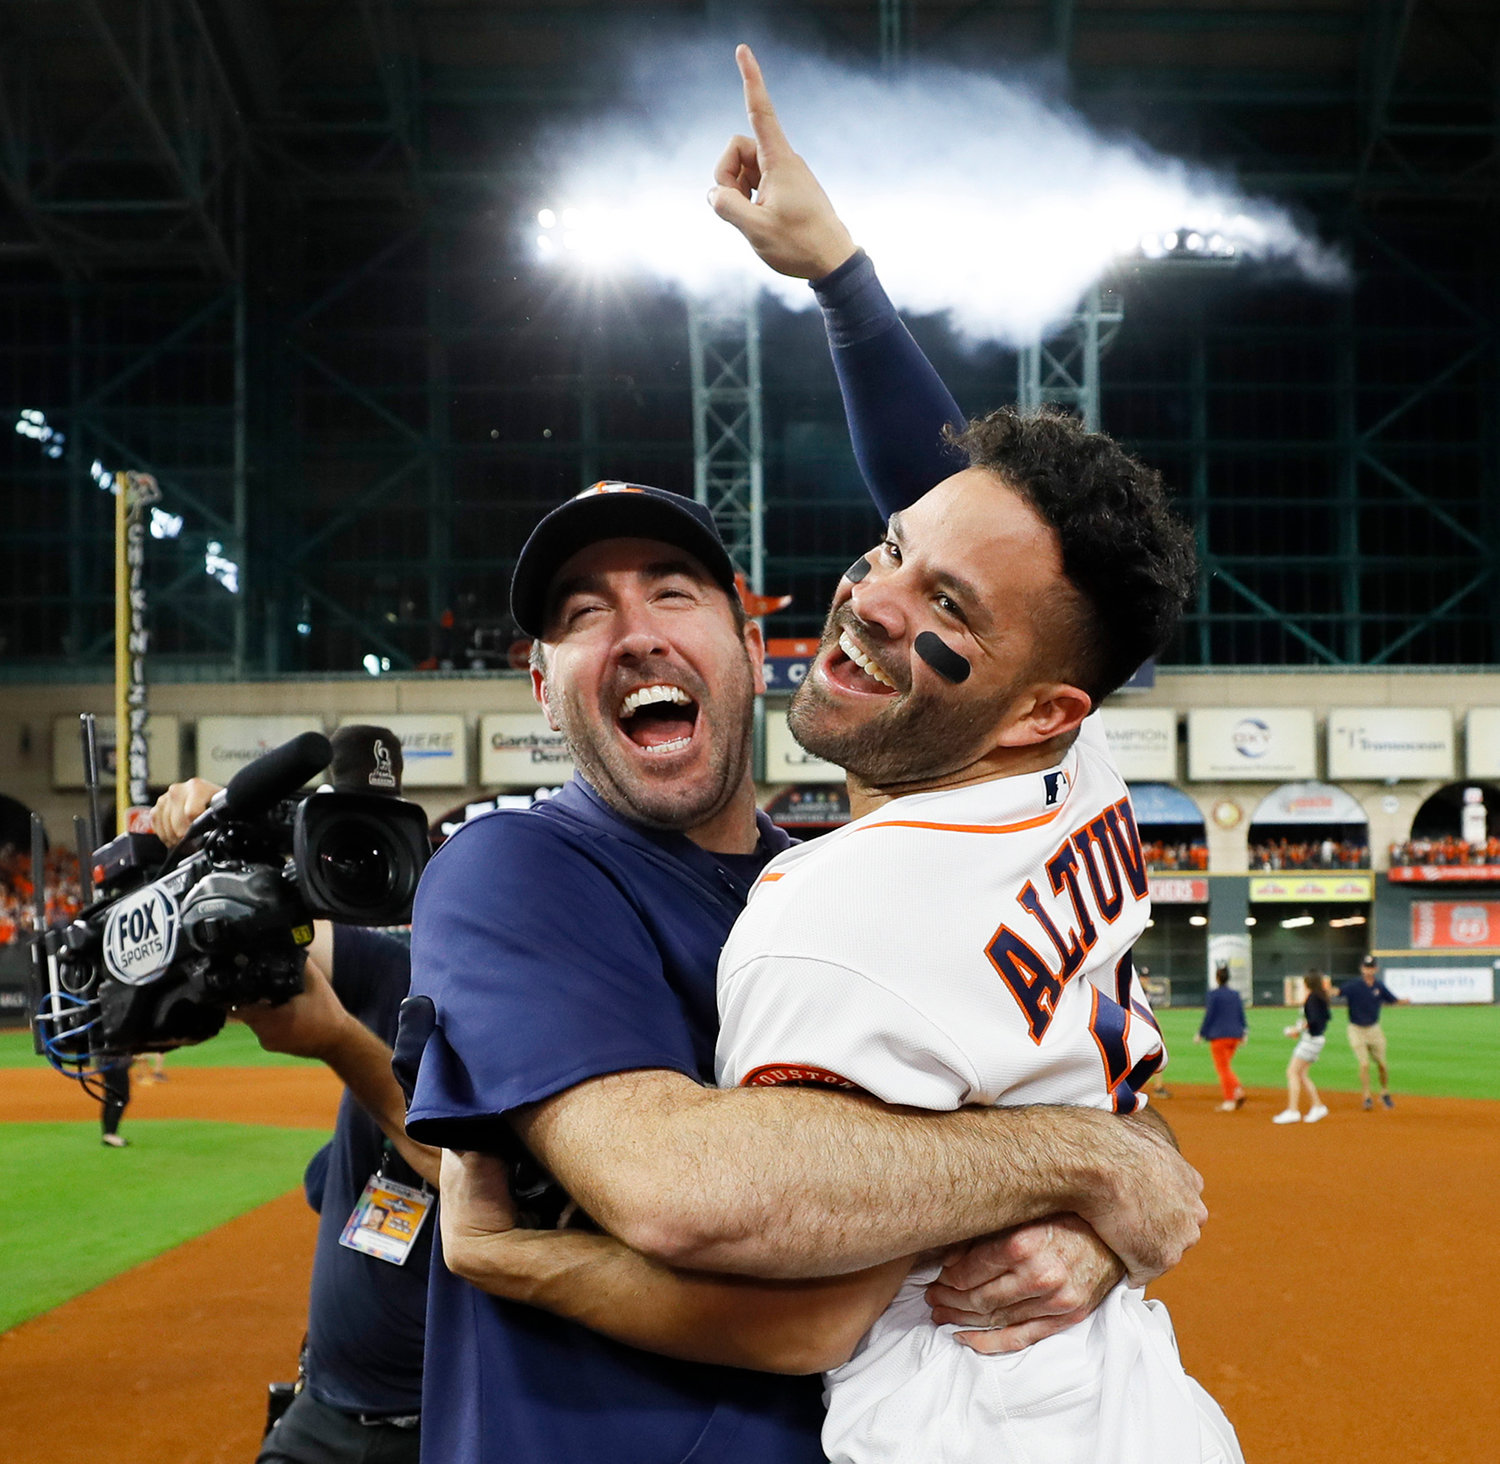 HOUSTON ASTROS Jose Altuve, right, and starting pitcher Justin Verlander celebrate after winning Game 6 of the MLB American League Championship Series against the New York Yankees Saturday in Houston. The Astros won 6-4 to win the series 4-2.